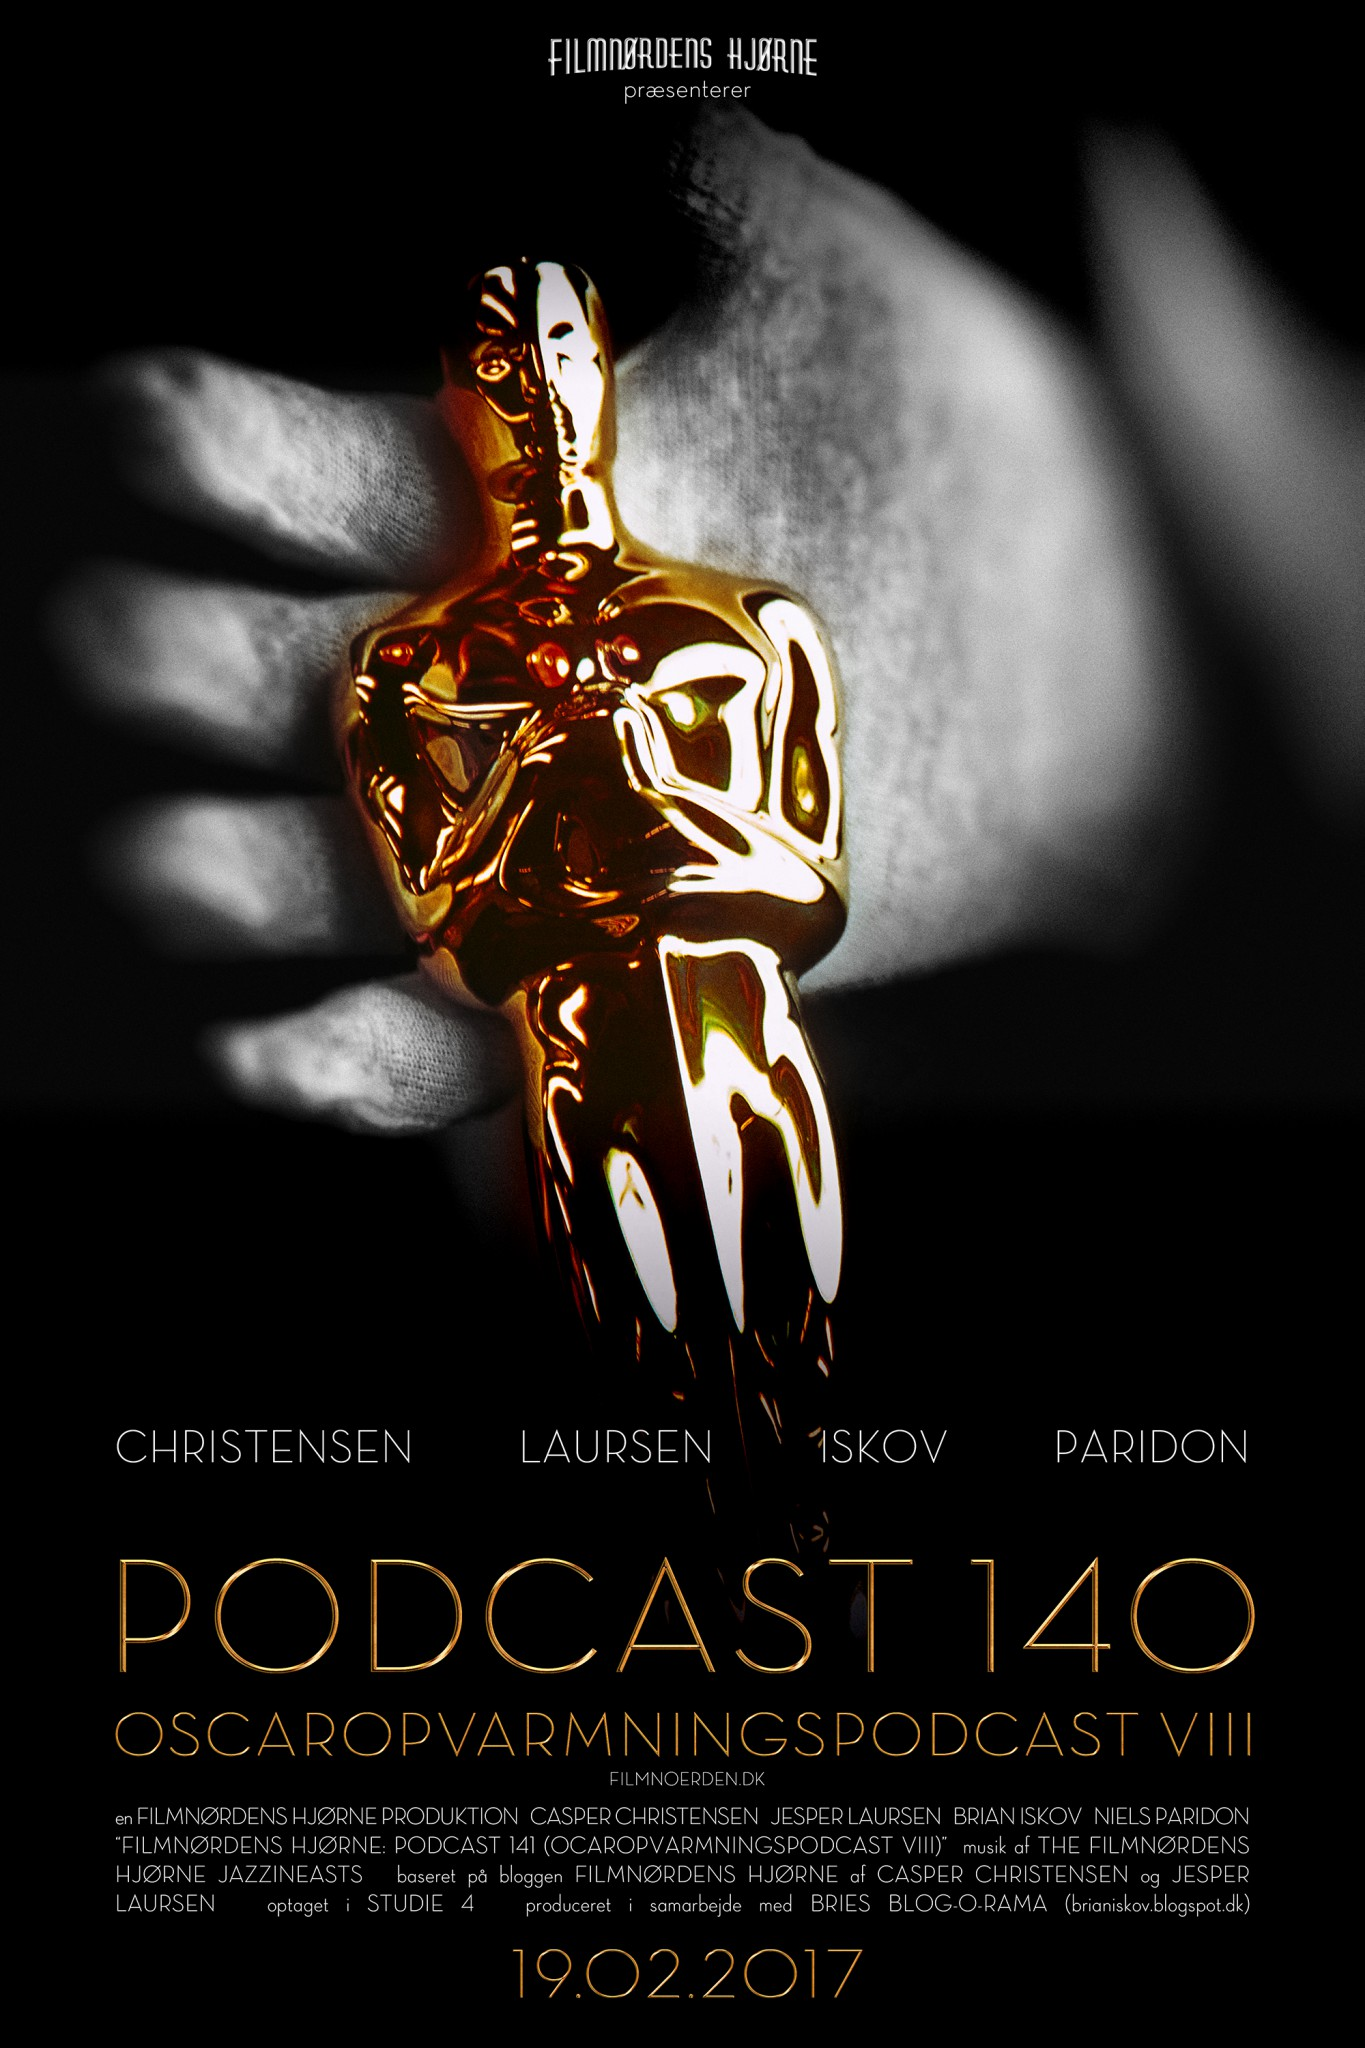 Podcast 141 small